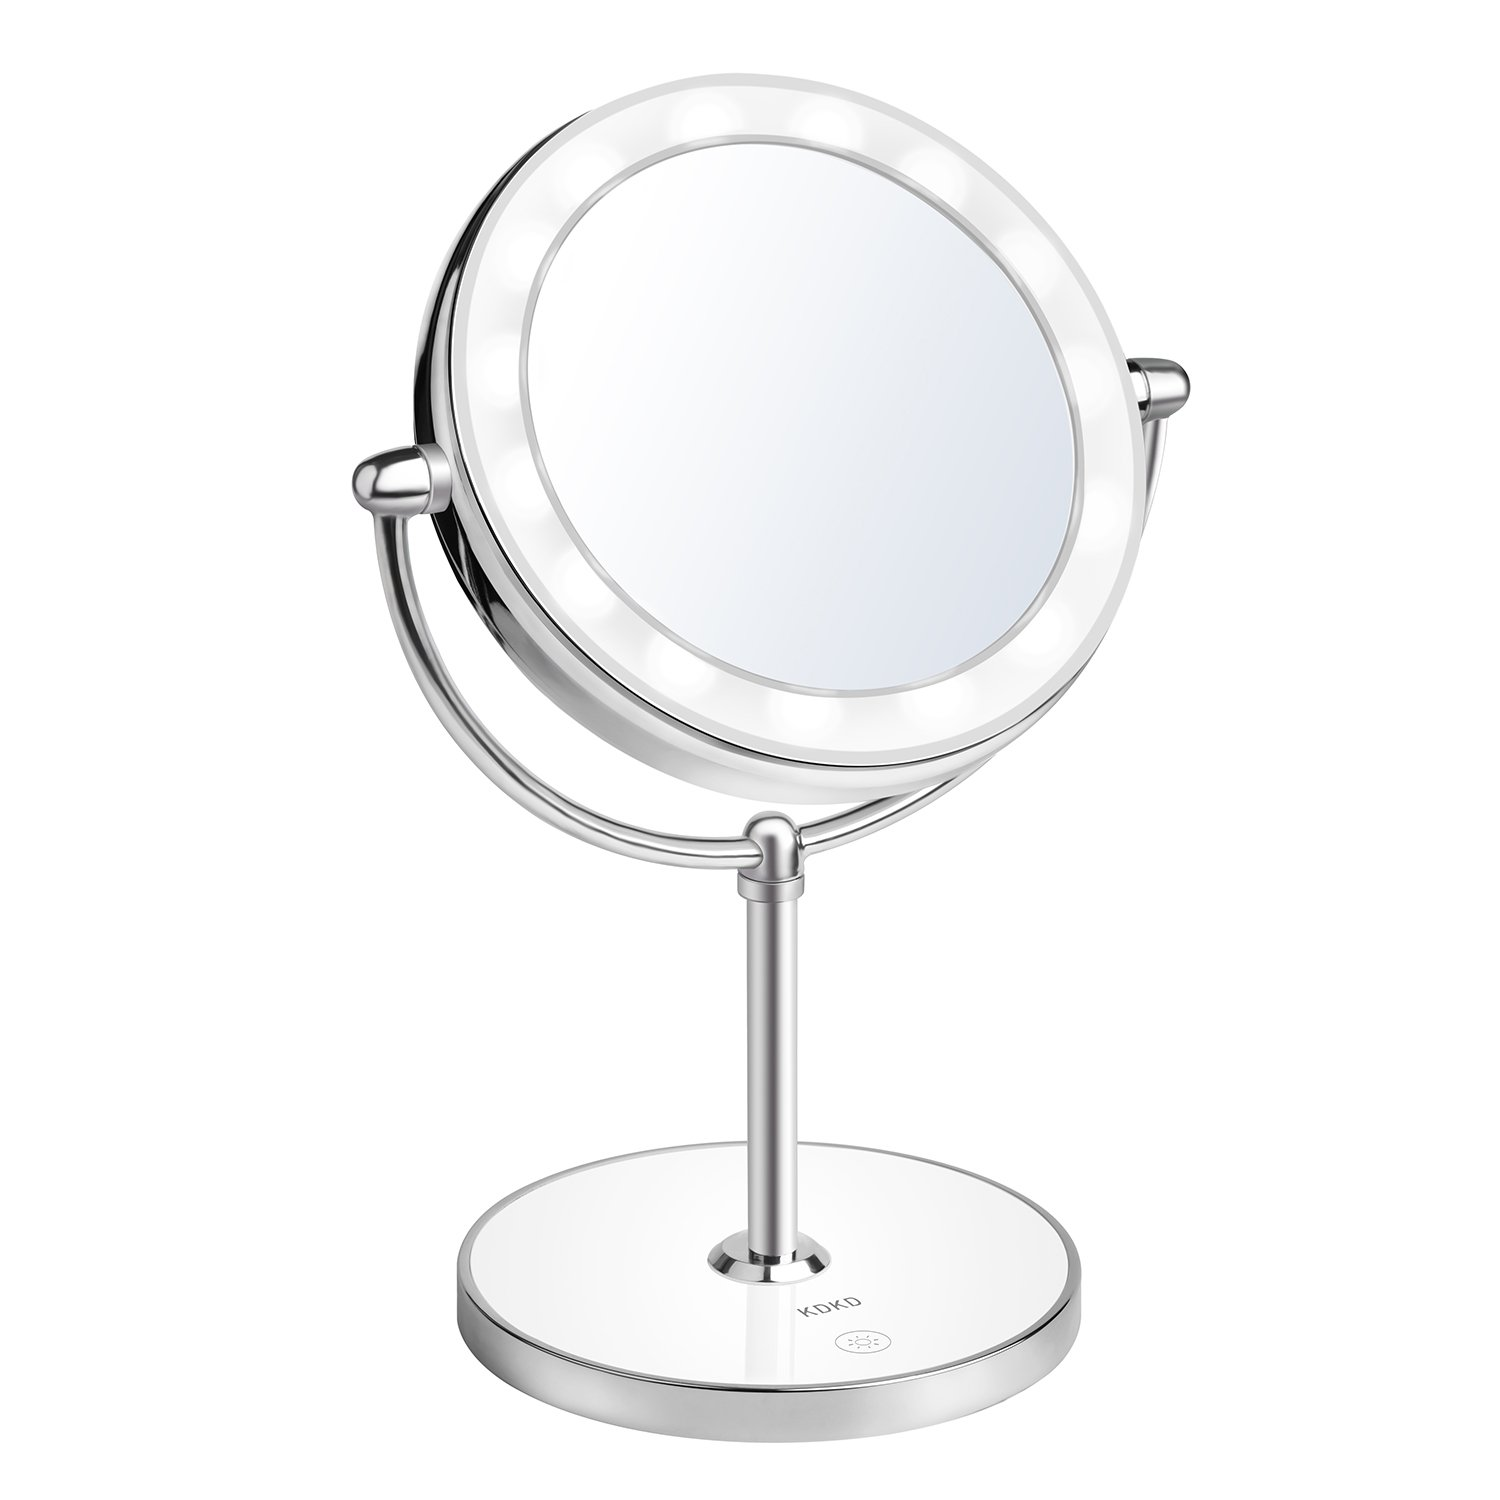 KDKD Lighted Makeup Mirror 1X 7X Magnification Double Sided Round Shape with Base Touch Button, Cordless and Rechargeable by KDKD (Image #1)